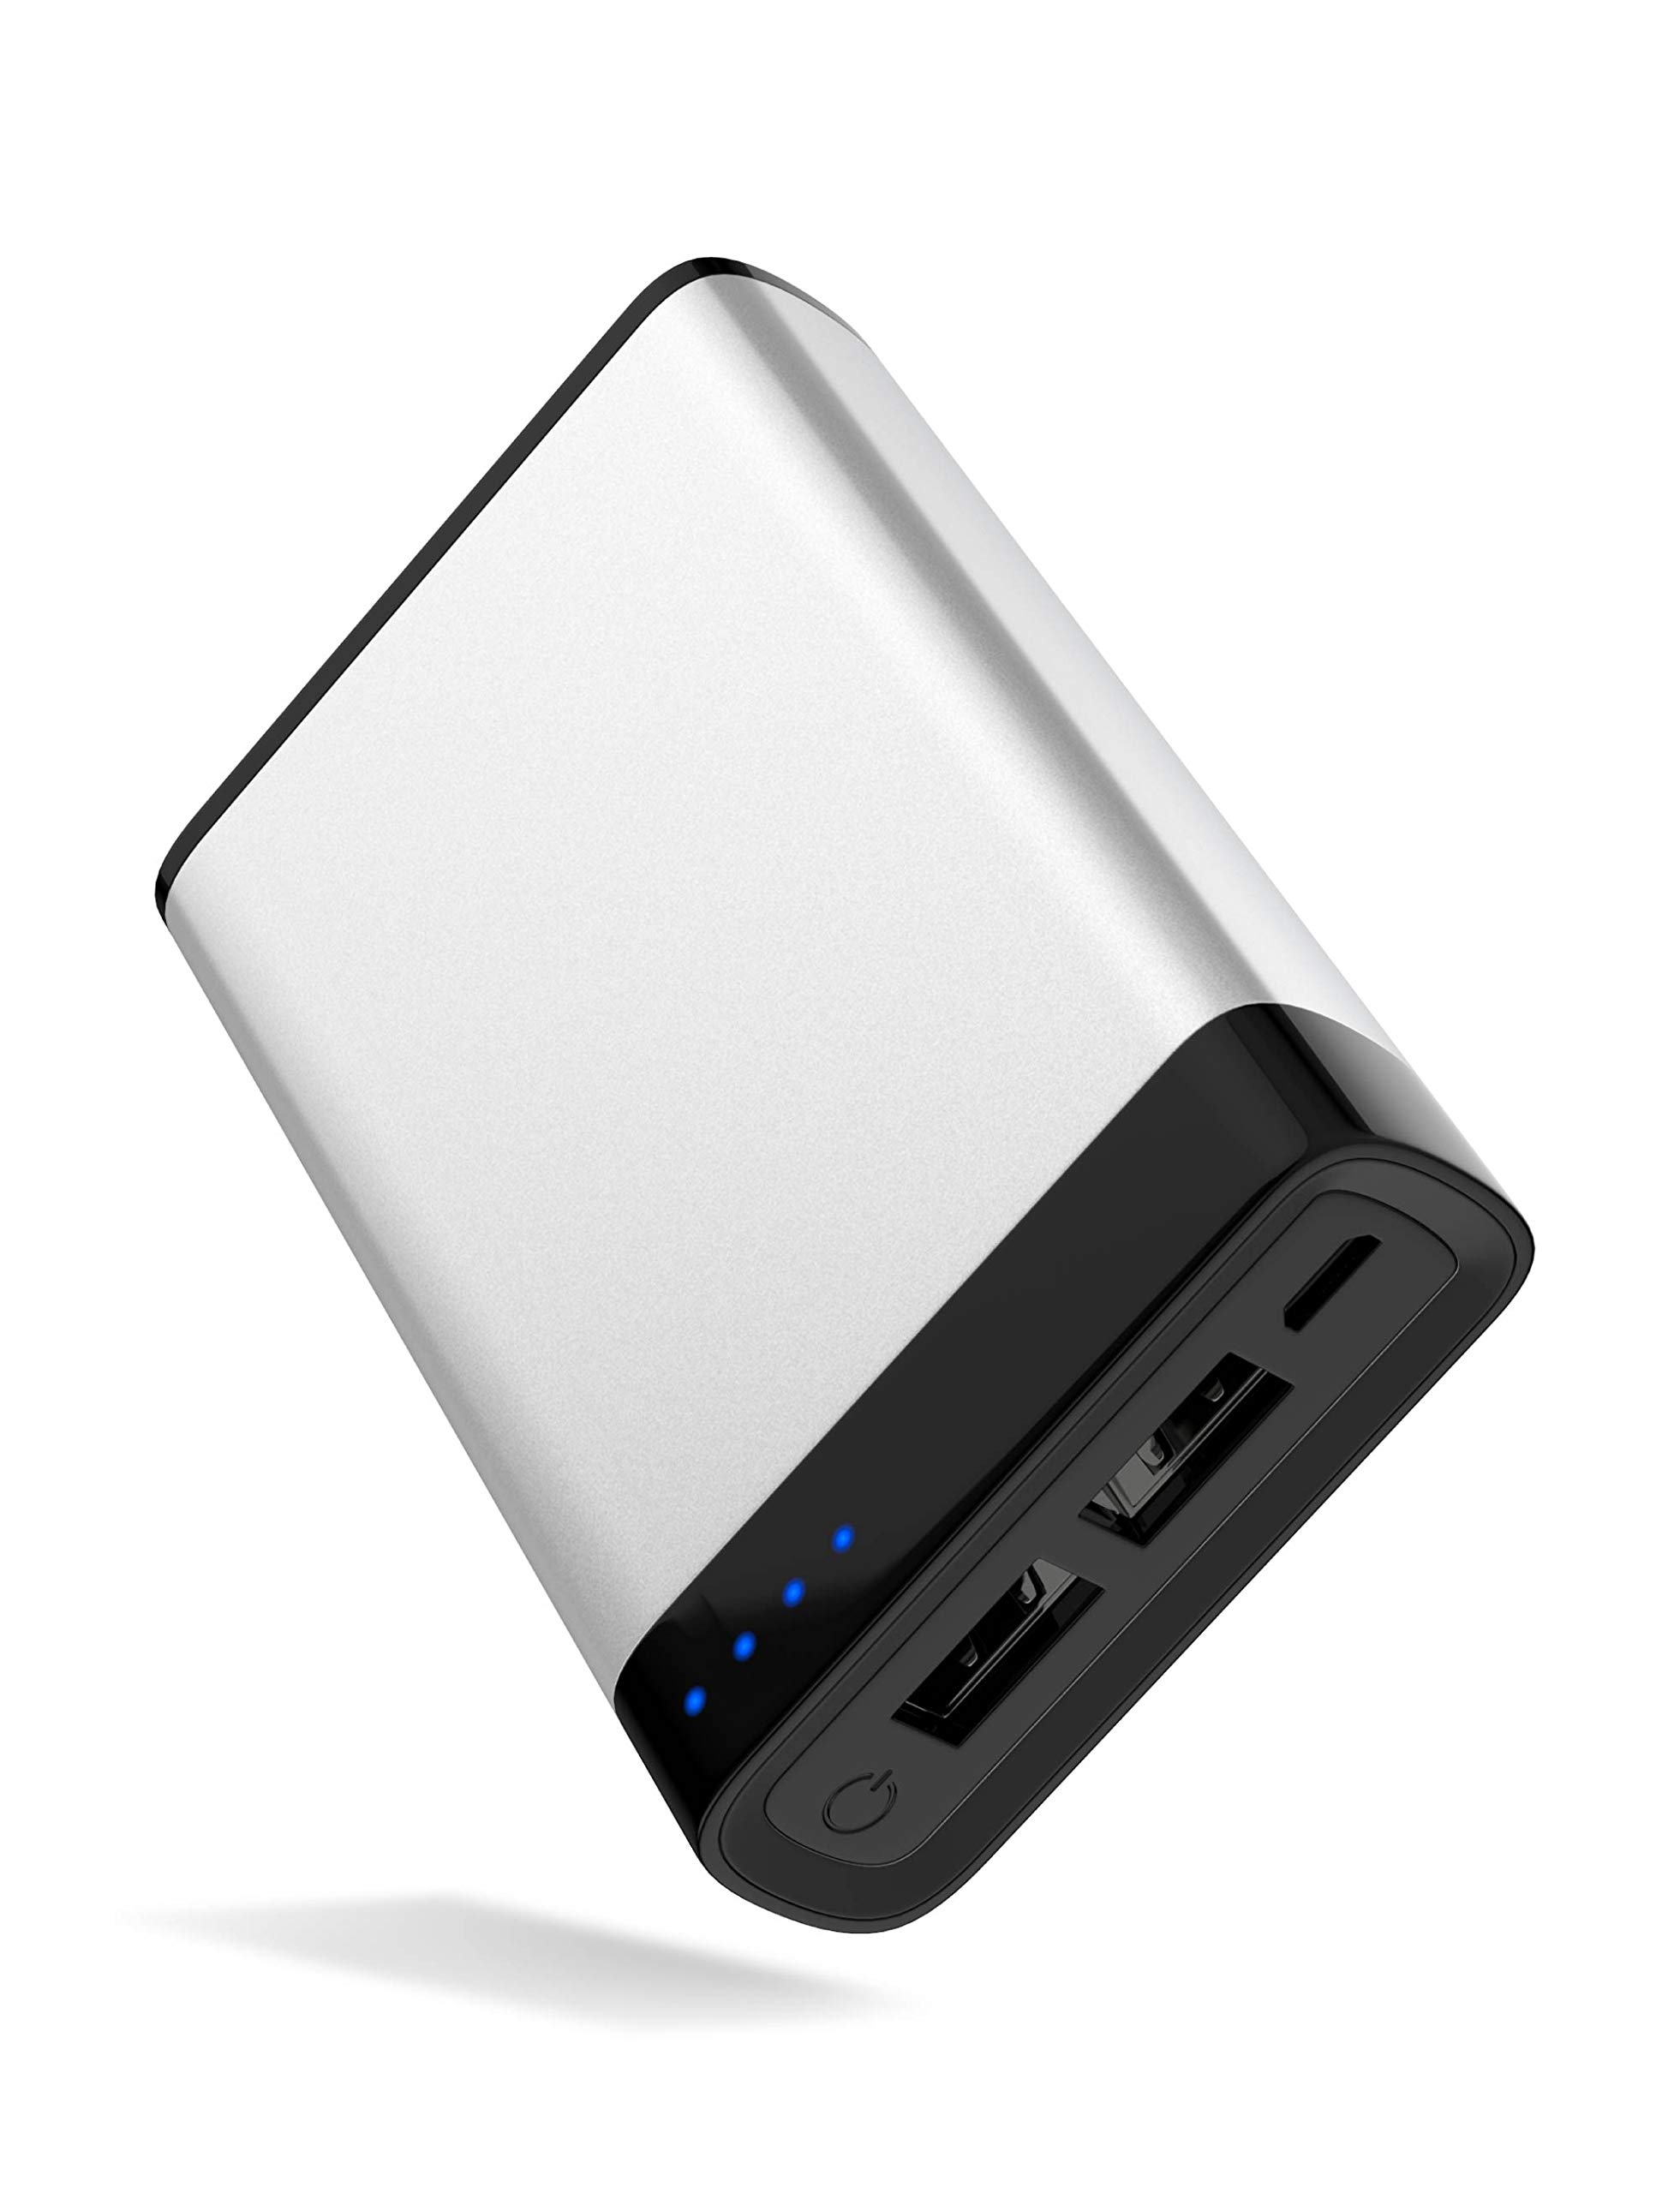 TalkWorks Portable Charger Power Bank USB Battery Pack 6000 mAh - External Cell Phone Backup Supply for Apple iPhone 12, 11, XR, XS, X, 8, 7, 6, SE, iPad, Android for Samsung Galaxy - Silver